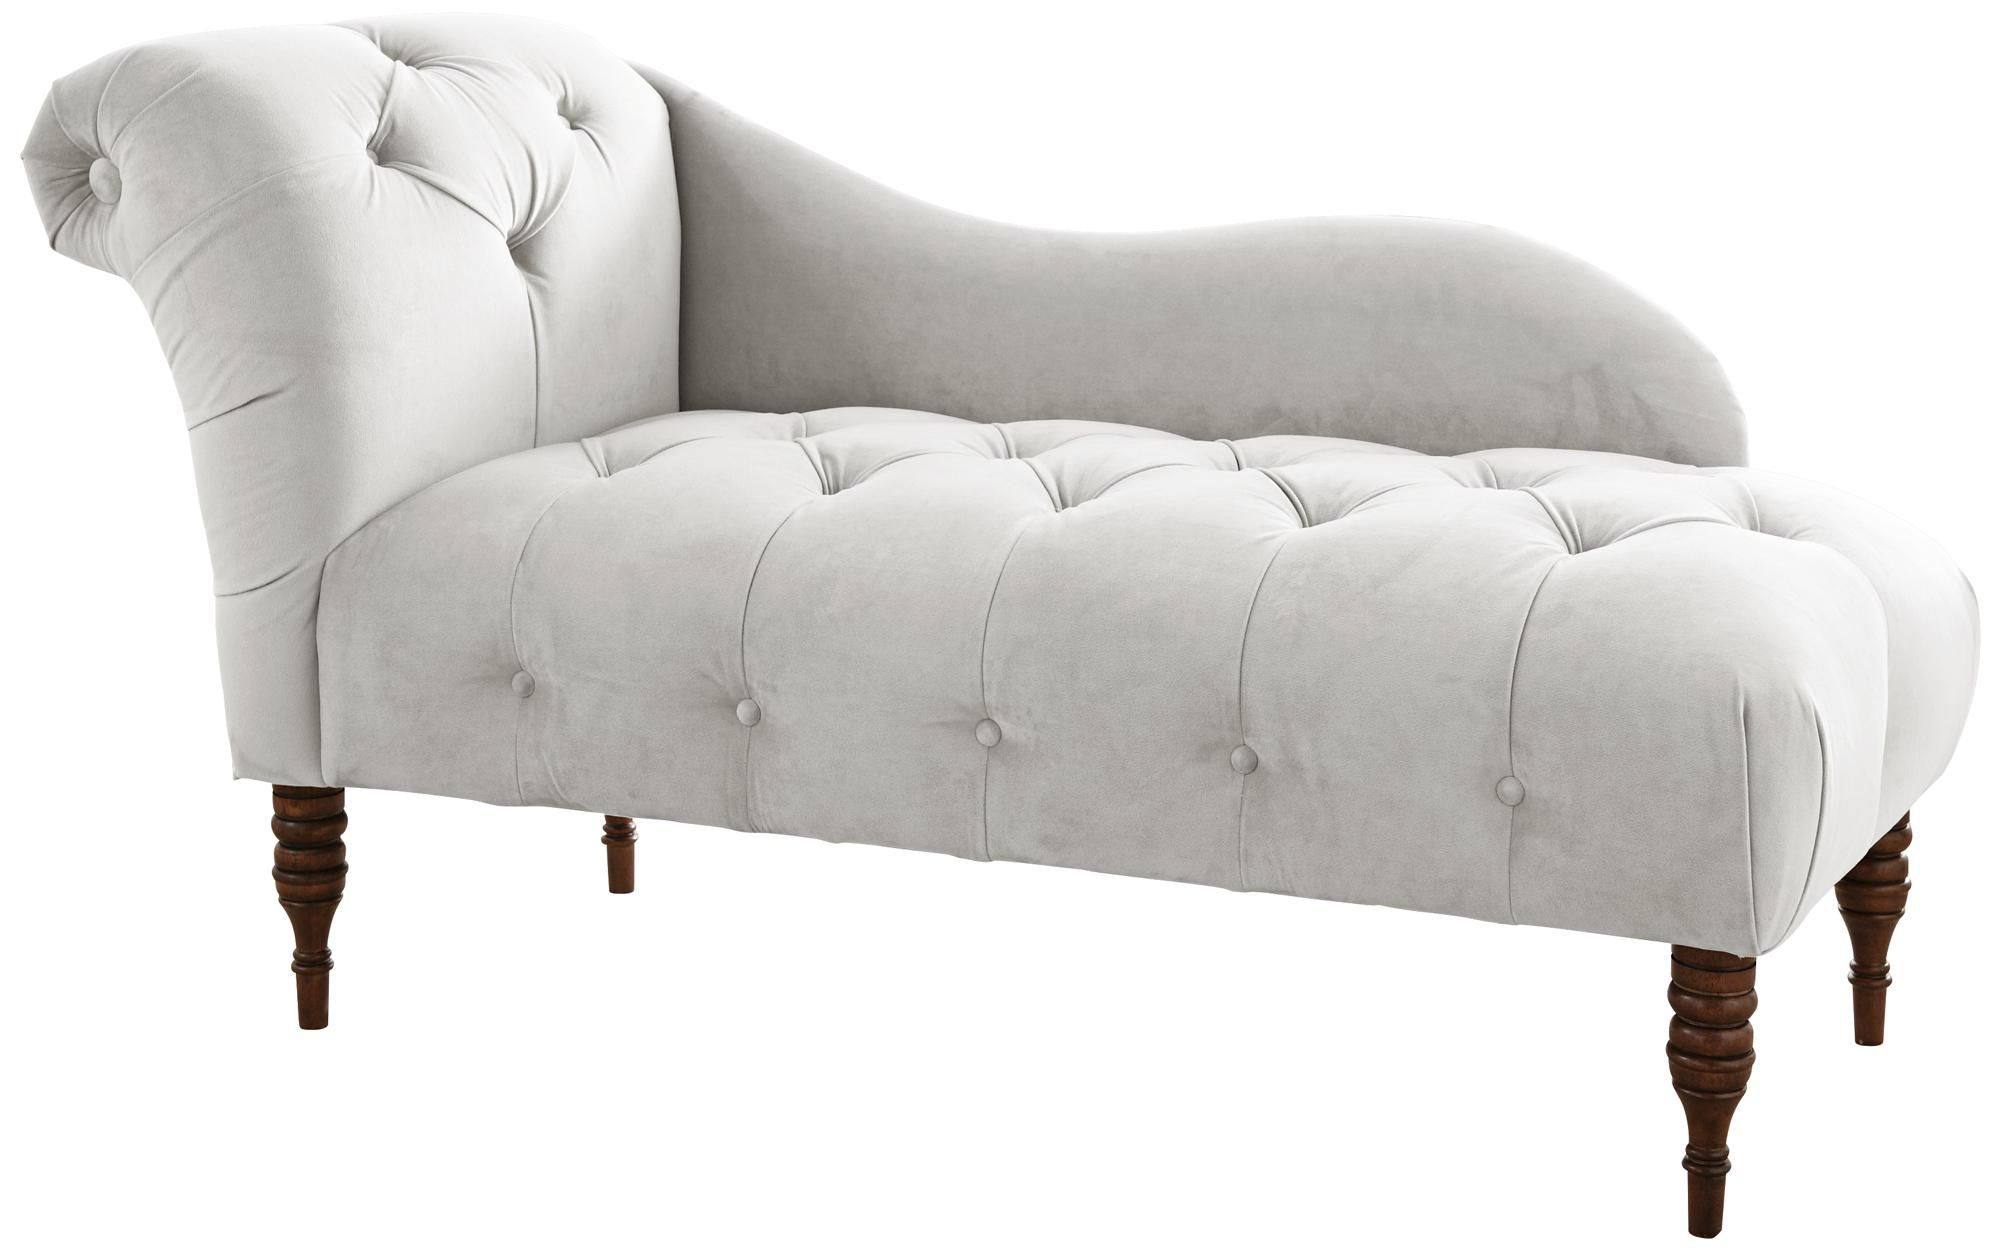 White Lounge Chairs White Velvet Upholstered Chaise Lounge Chair For The